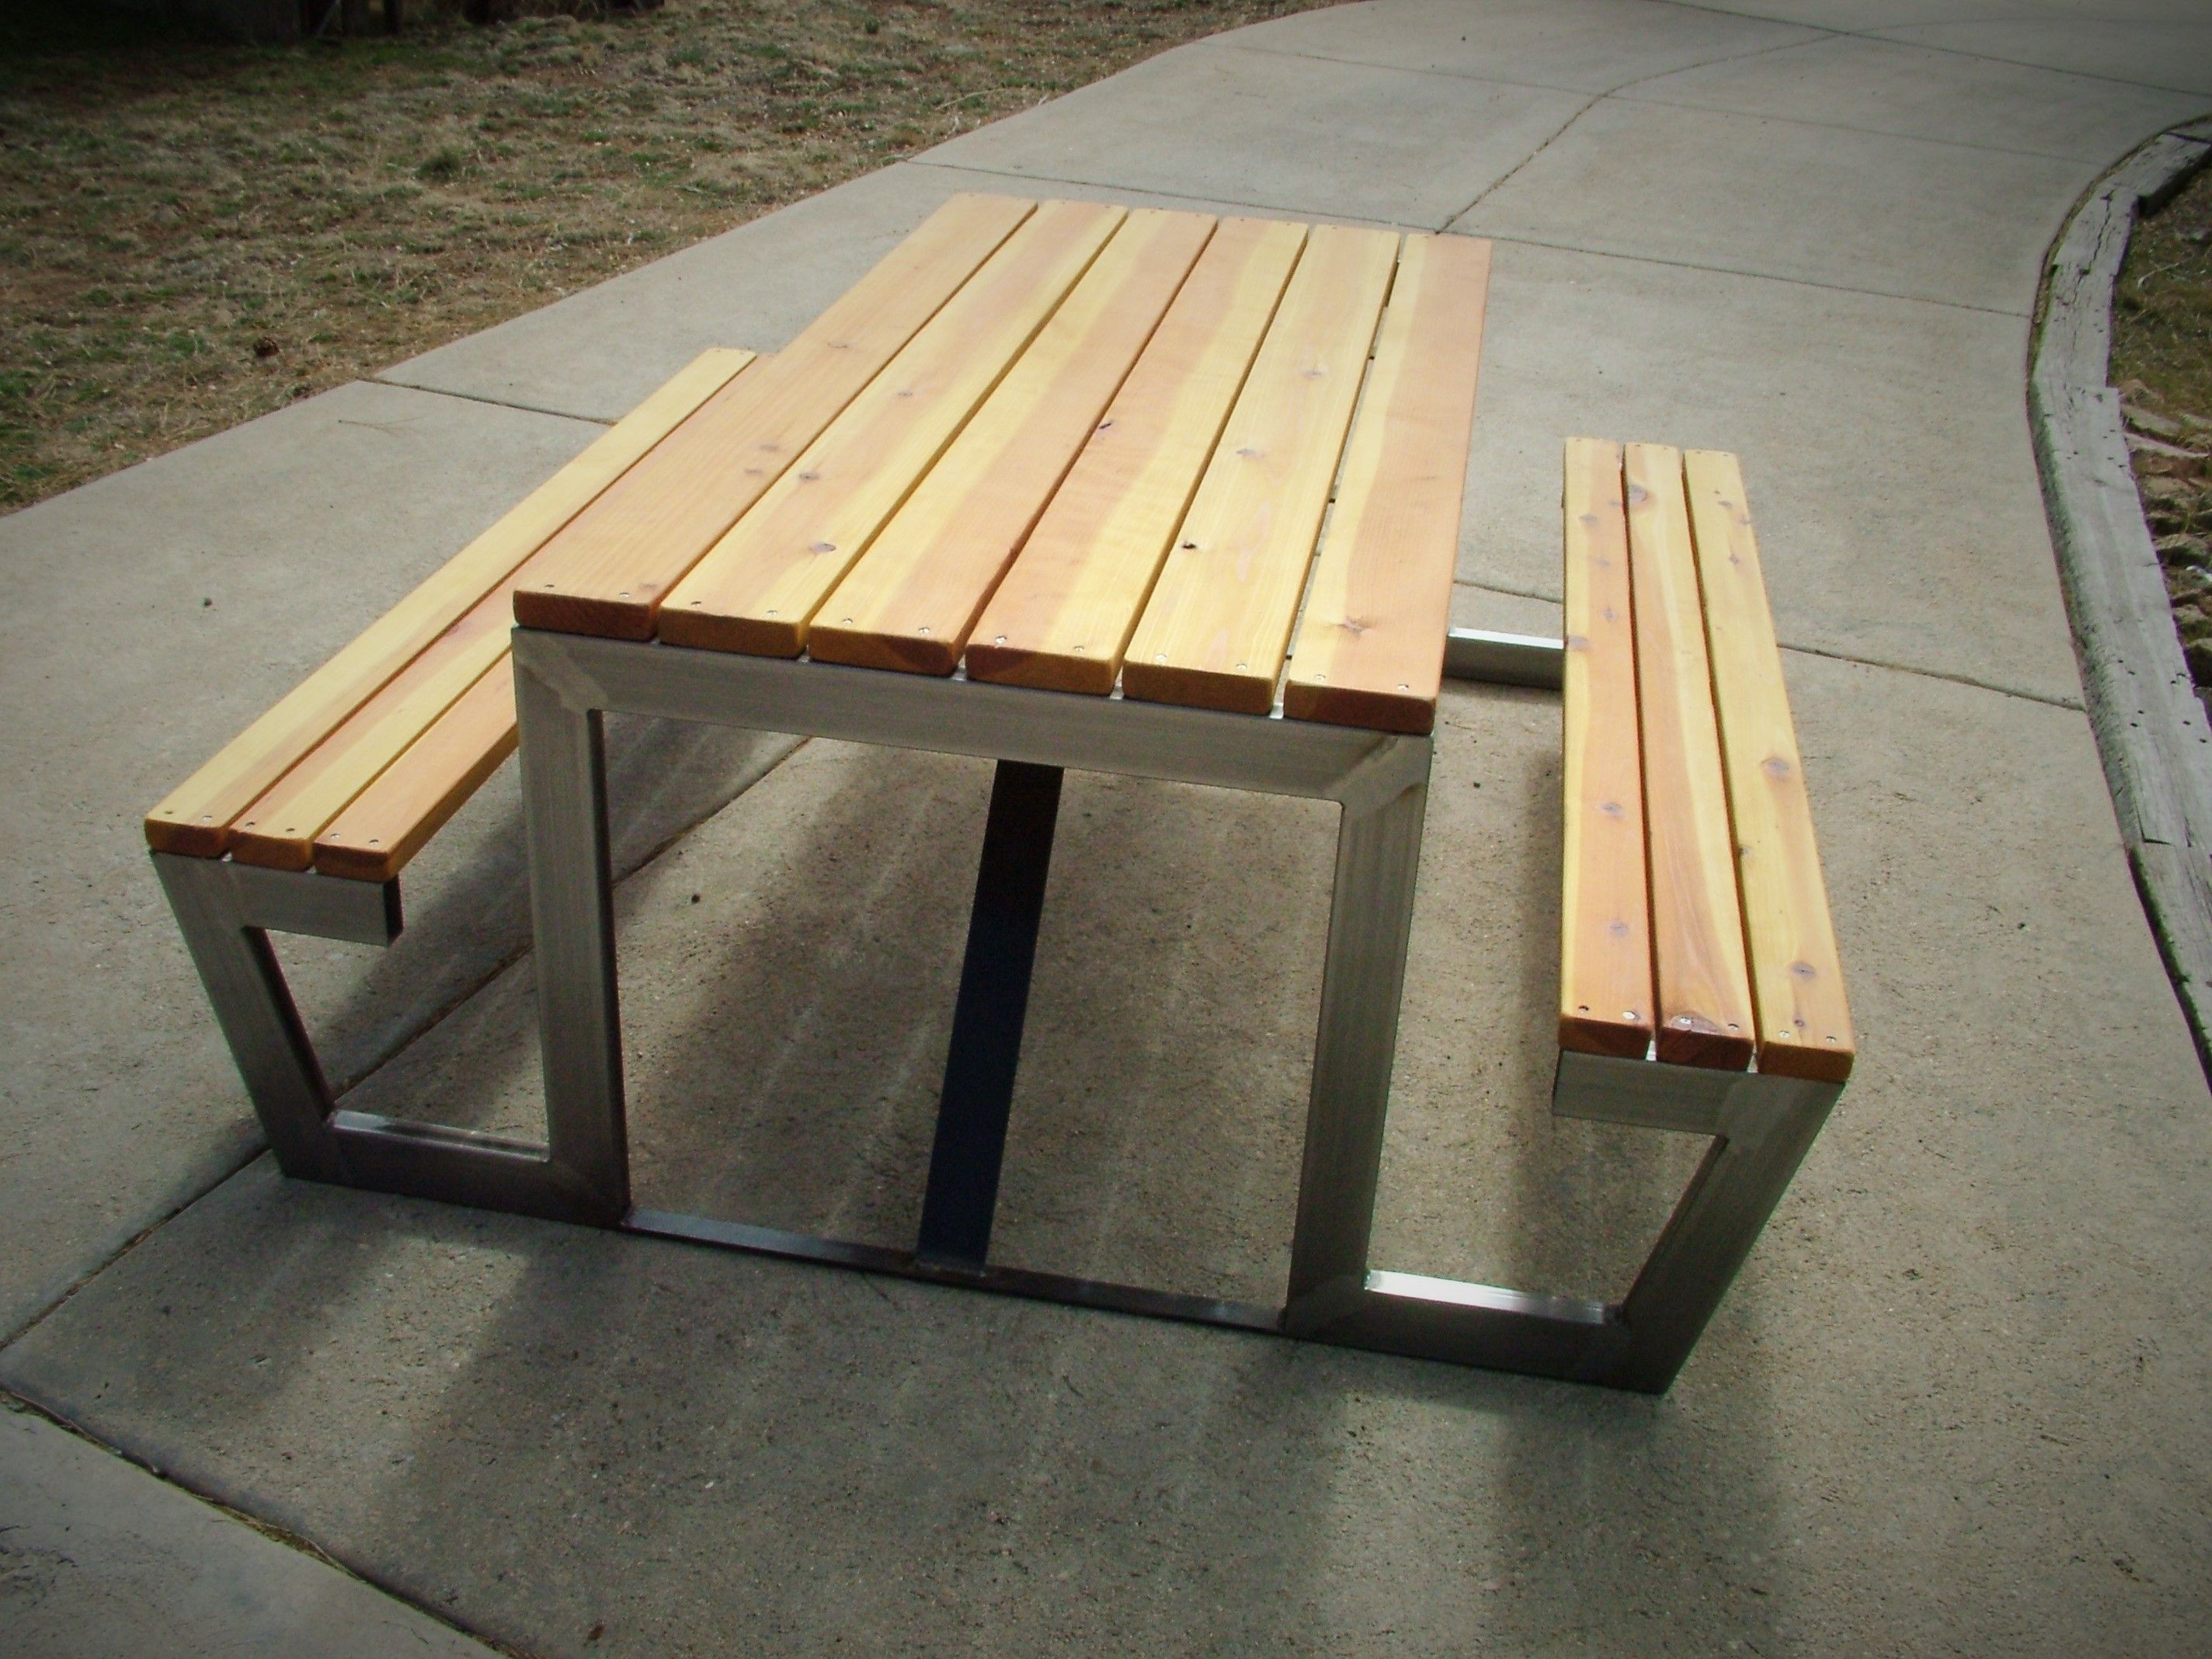 Modern Picnic Table PICNIC TABLE Pinterest Picnic Tables - Modern picnic table plans